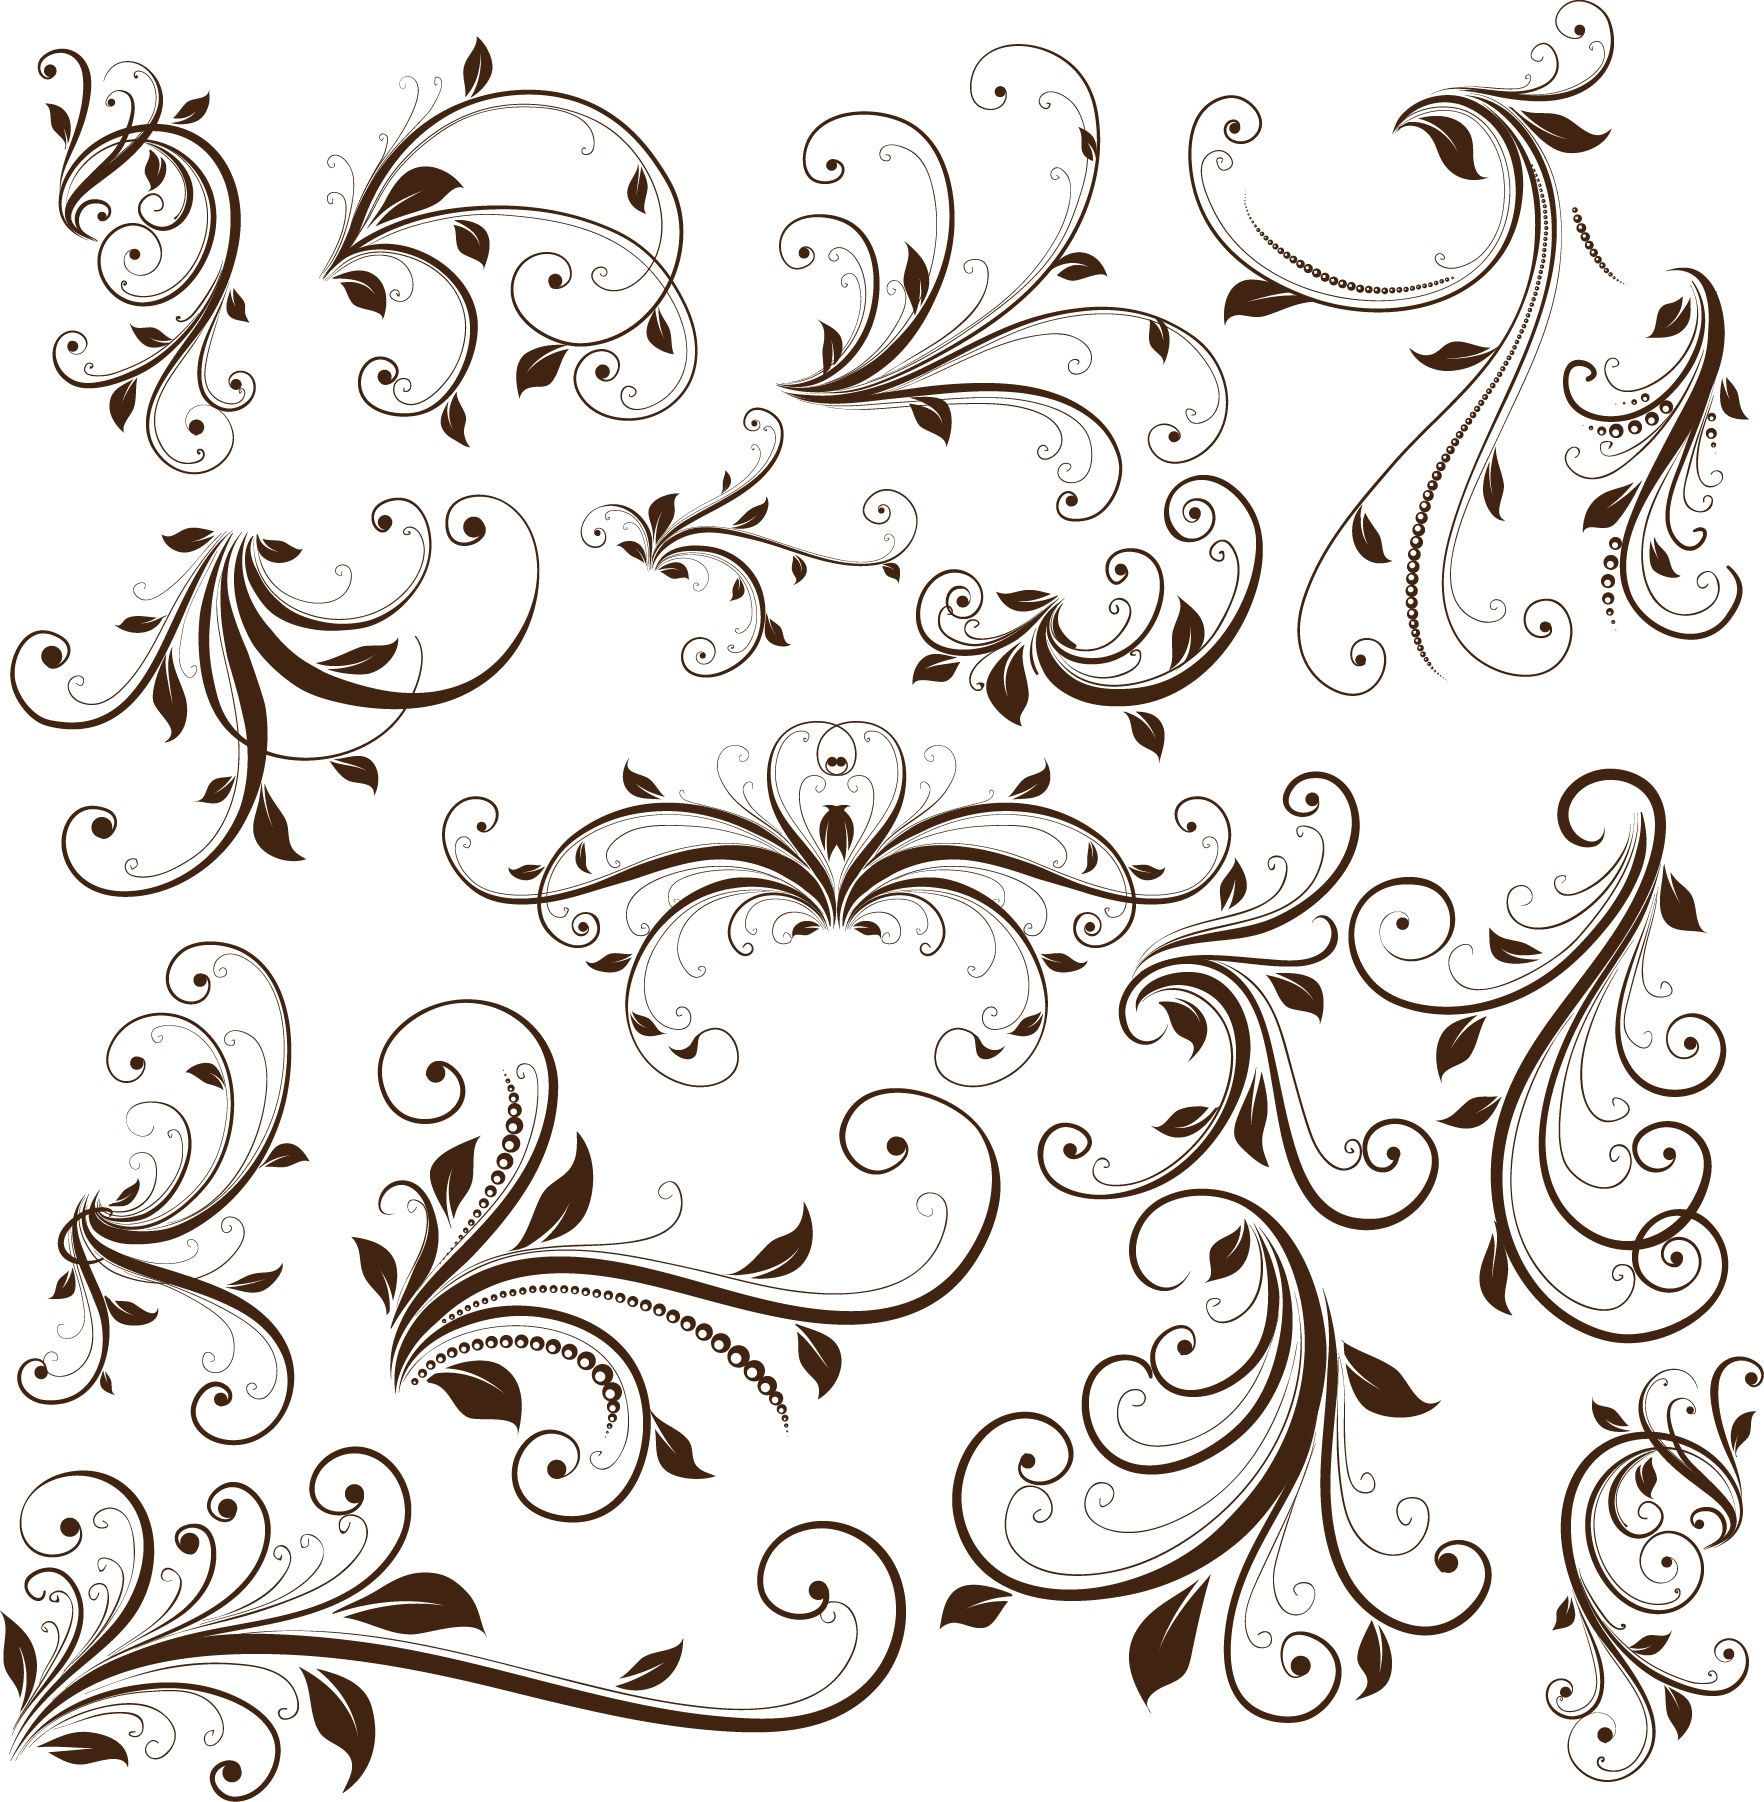 1764x1802 Swirl Floral Decorative Element Vector Graphic Free Vector